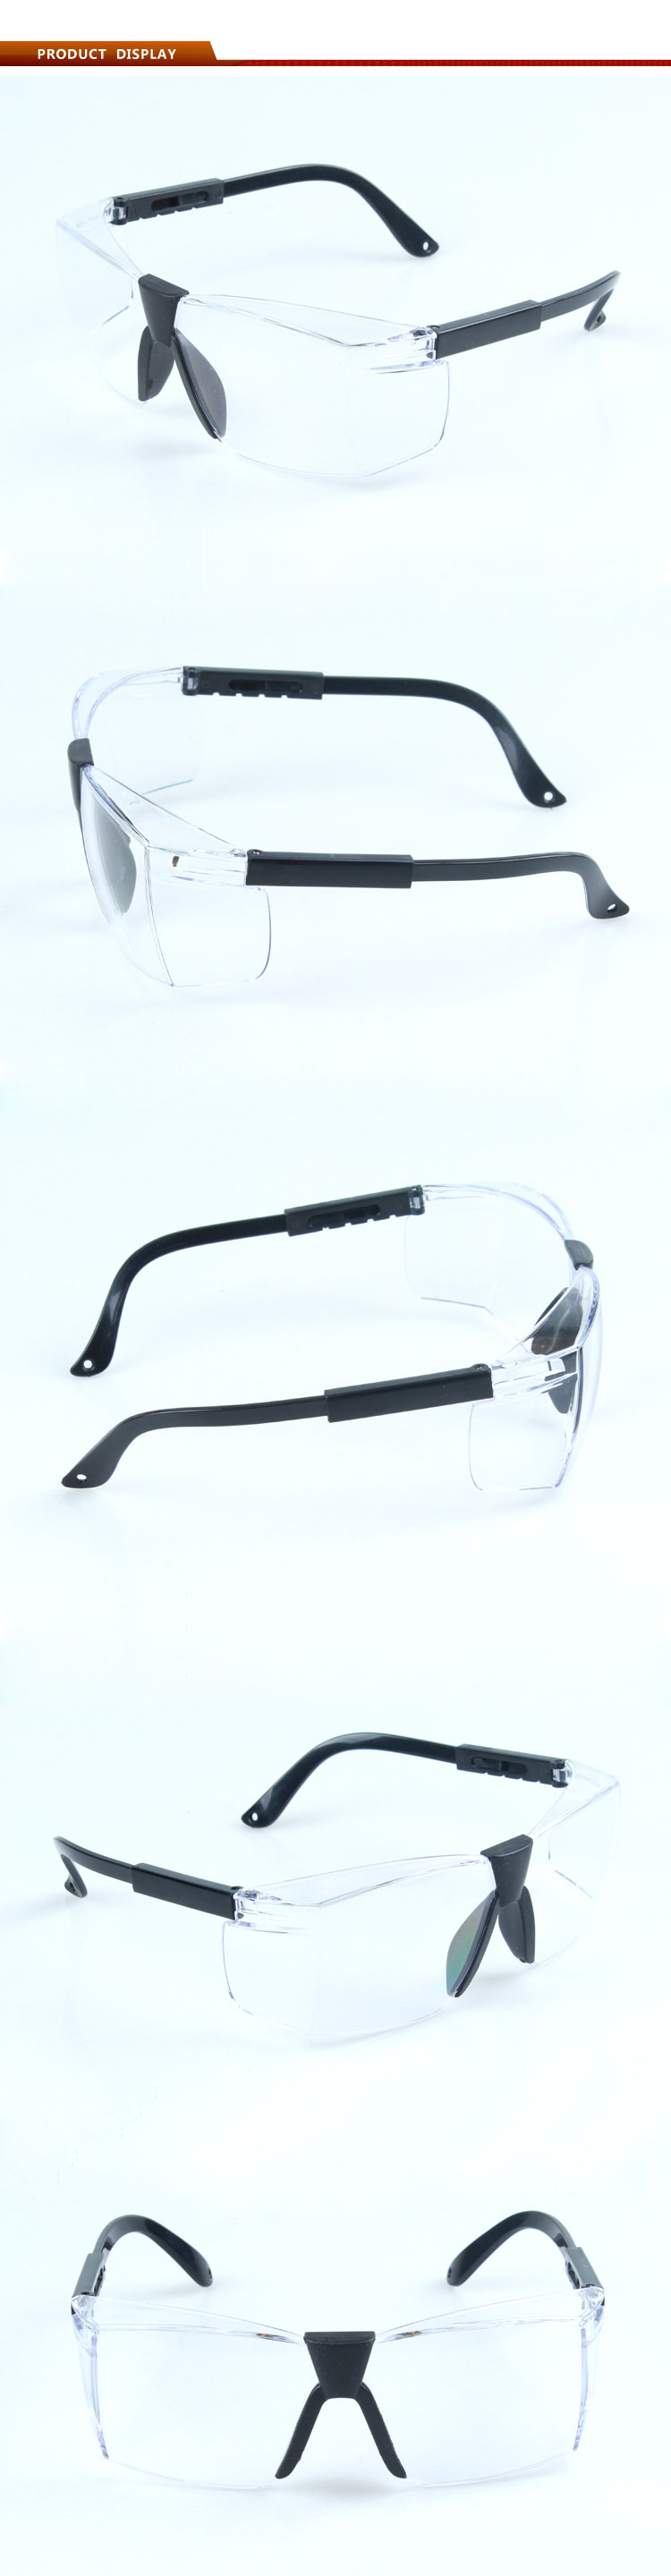 Custom saftey protective goggle with CE and ANSI Standard lab eye goggles